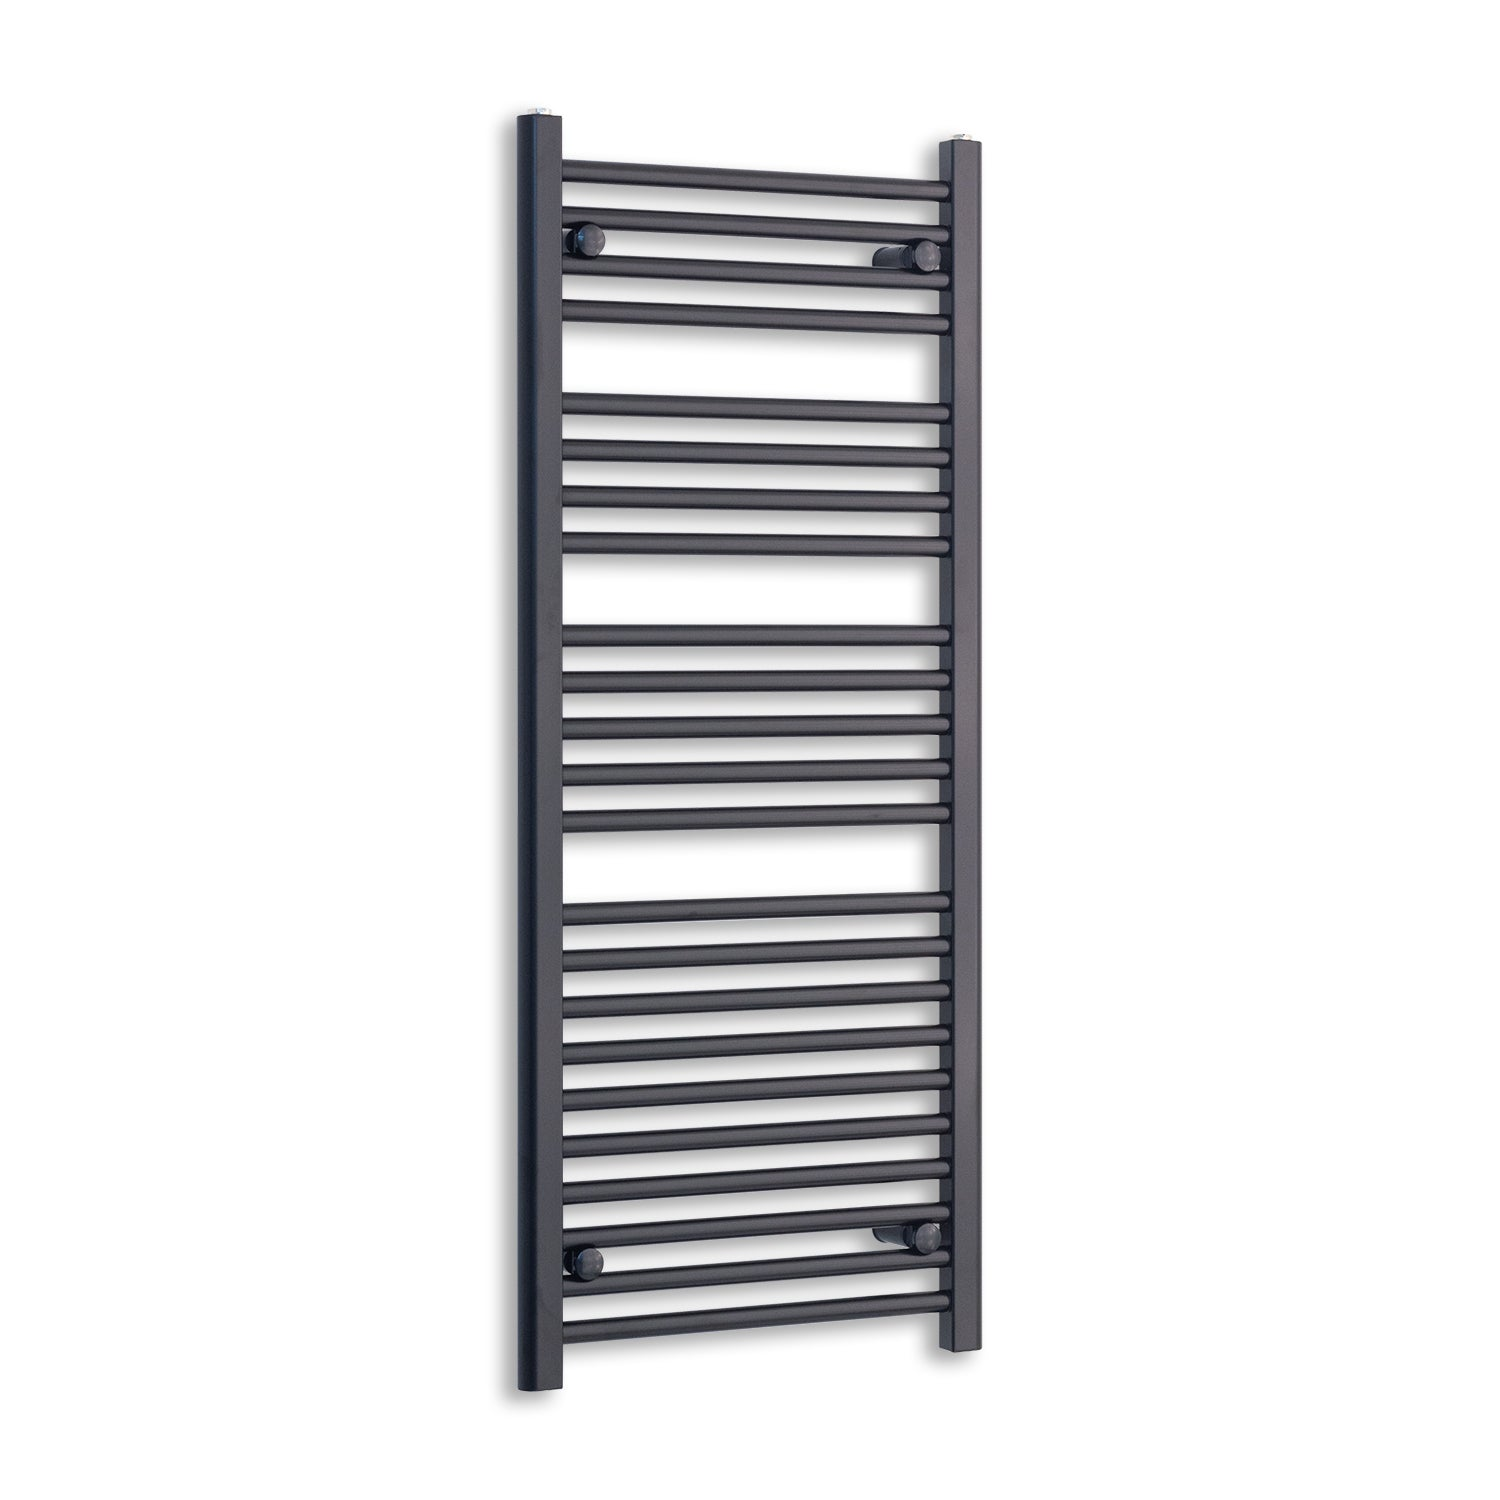 500mm Wide 1200mm High Flat Black Heated Towel Rail Radiator,Towel Rail Only